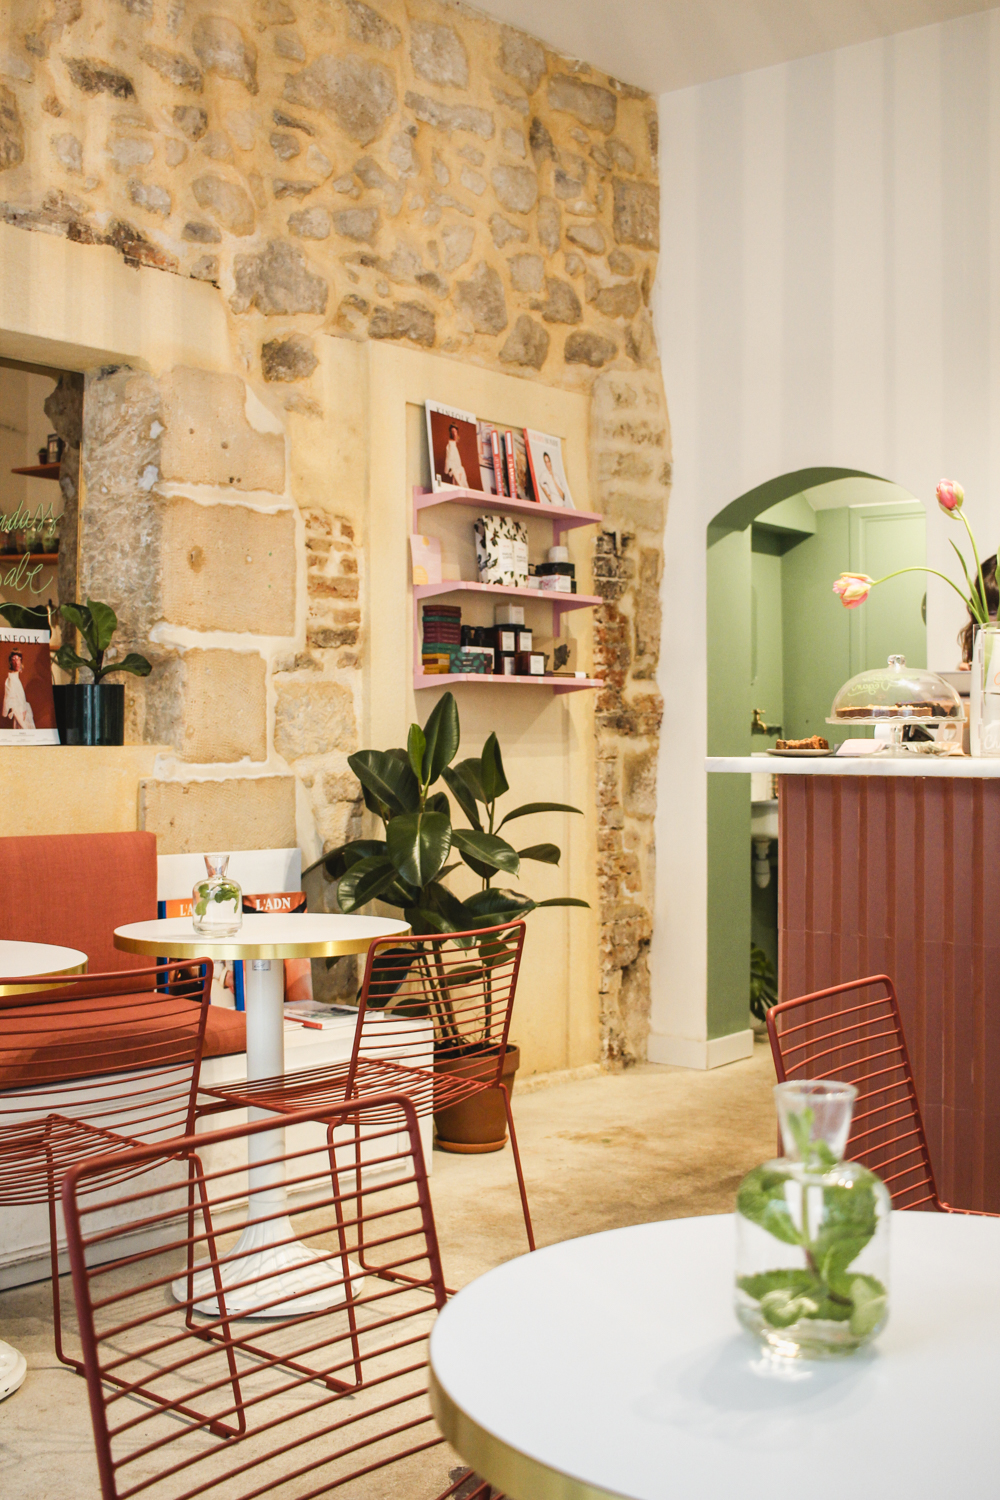 Cafes You Can't Miss in Paris- Cafe Berry